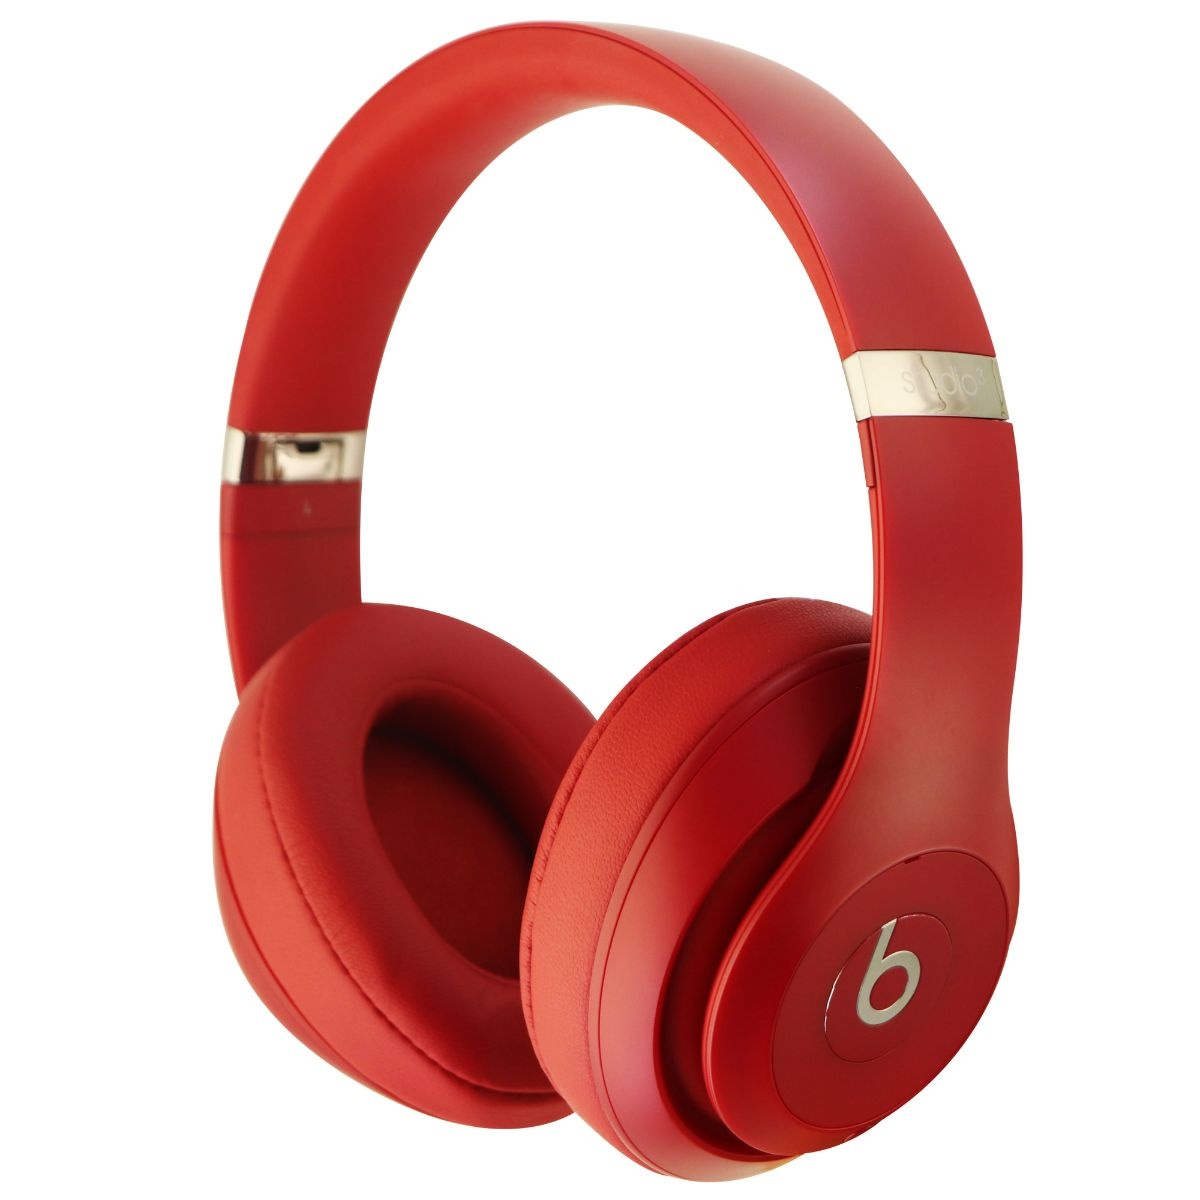 Beats by Dr. Dre Studio 3 Series Wireless Over-Ear Headphones - Red MQD02LL/A (Refurbished)